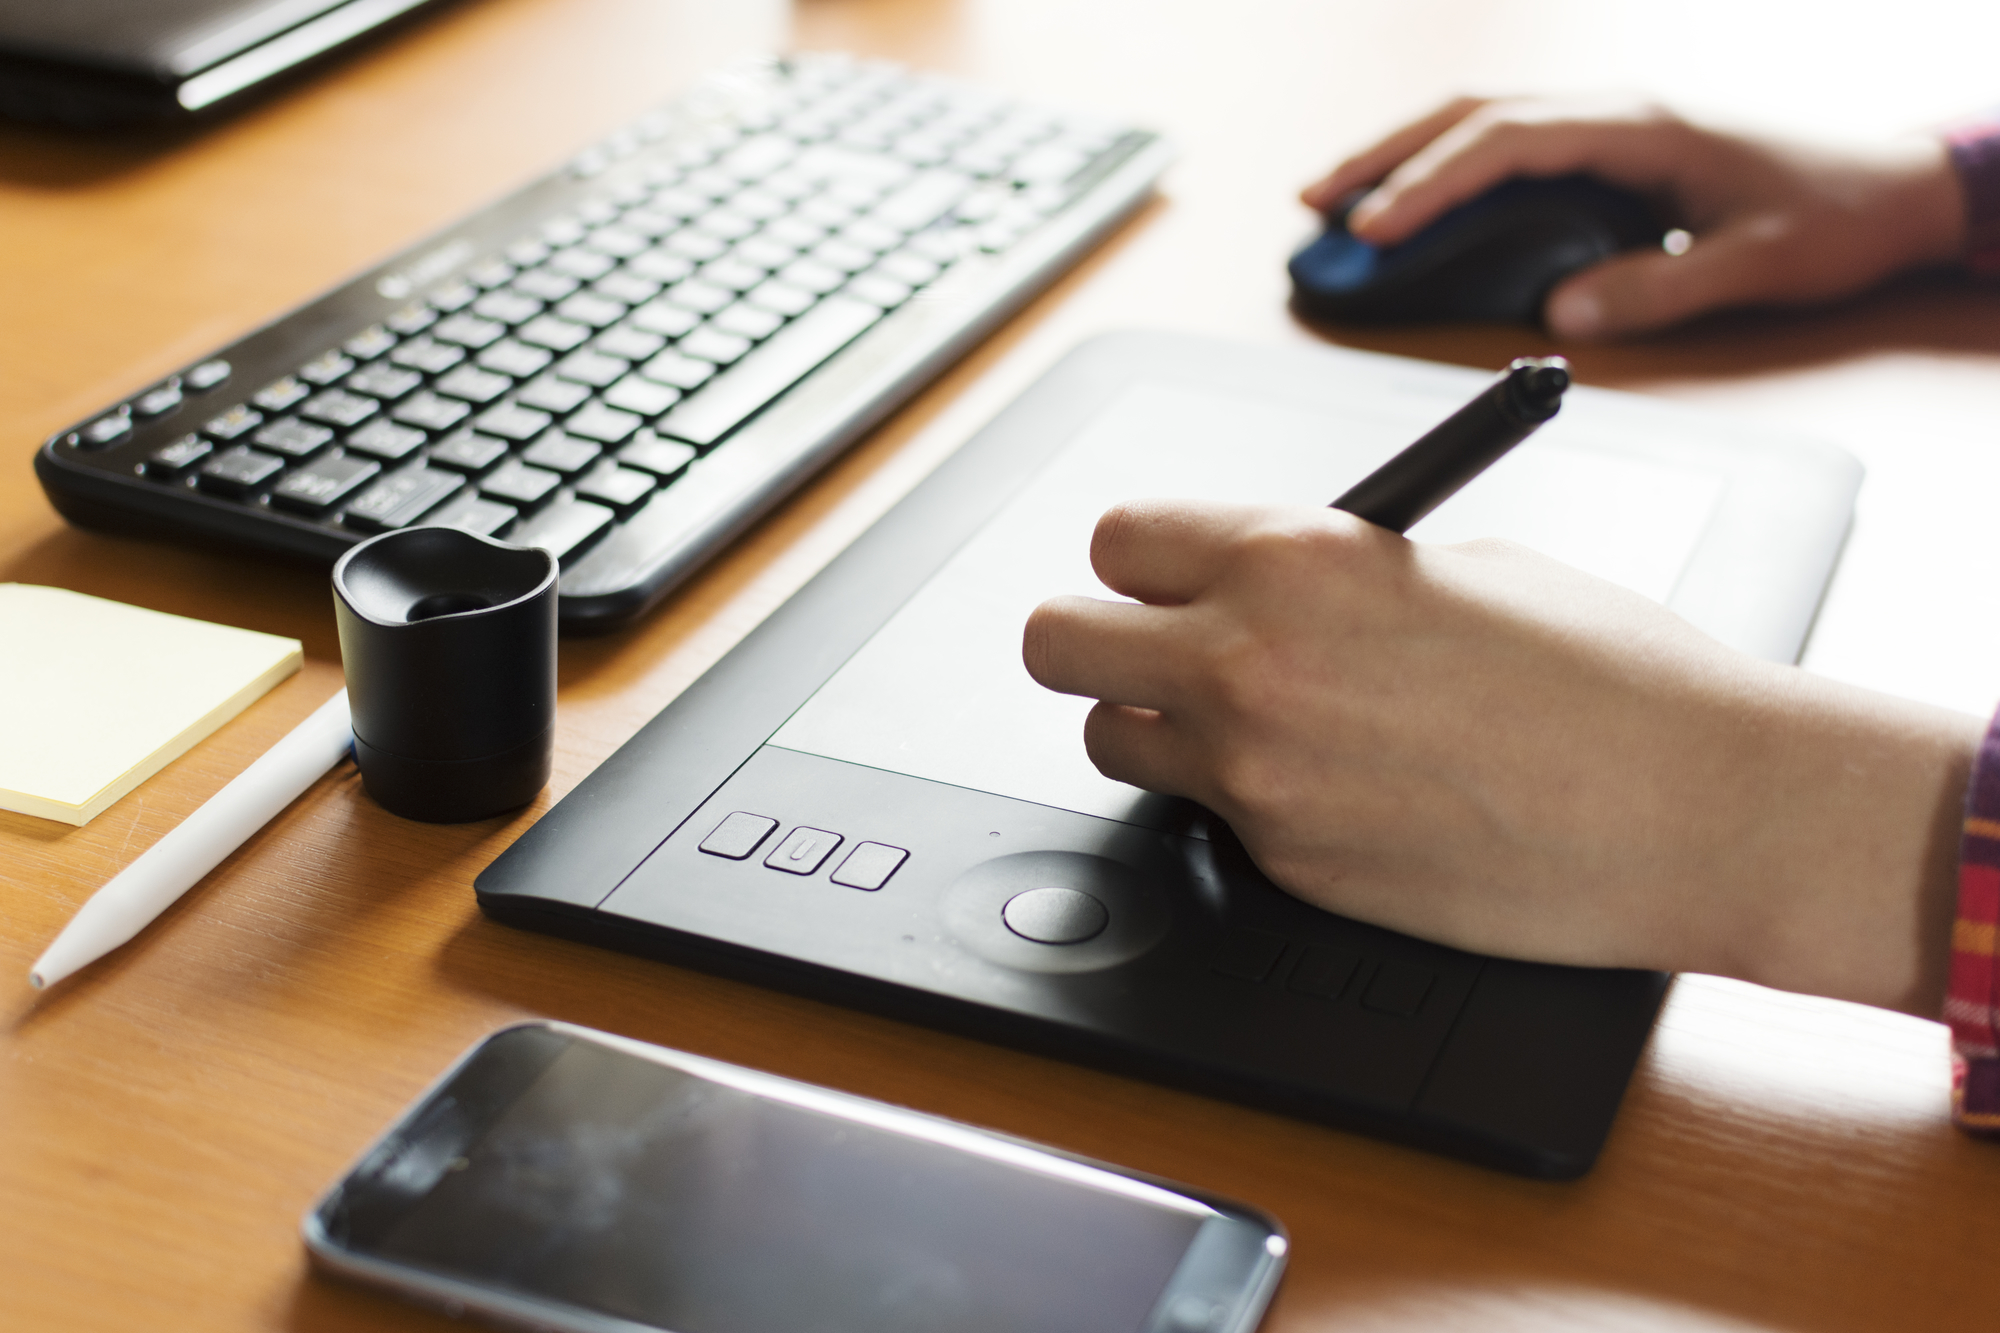 Pen Tablet – The Best Tablet That Fits Your Needs 2019 - The